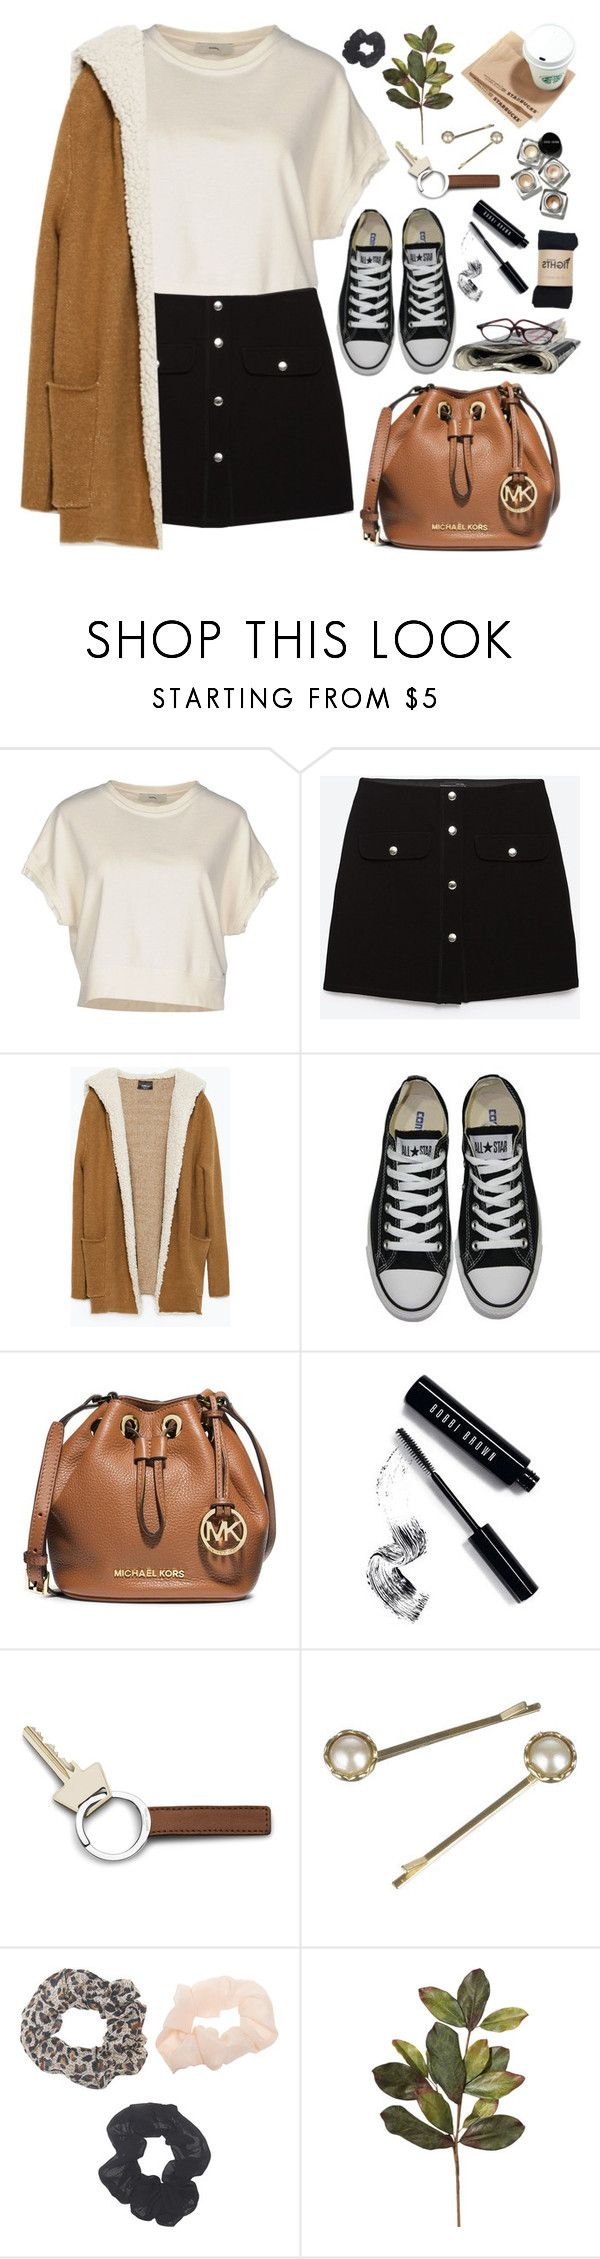 """2075. School"" by chocolatepumma ❤ liked on Polyvore featuring Diesel, Zara, Converse, MICHAEL Michael Kors, Bobbi Brown Cosmetics, Georg Jensen, Monsoon, Wet Seal, BackToSchool and michaelkors"